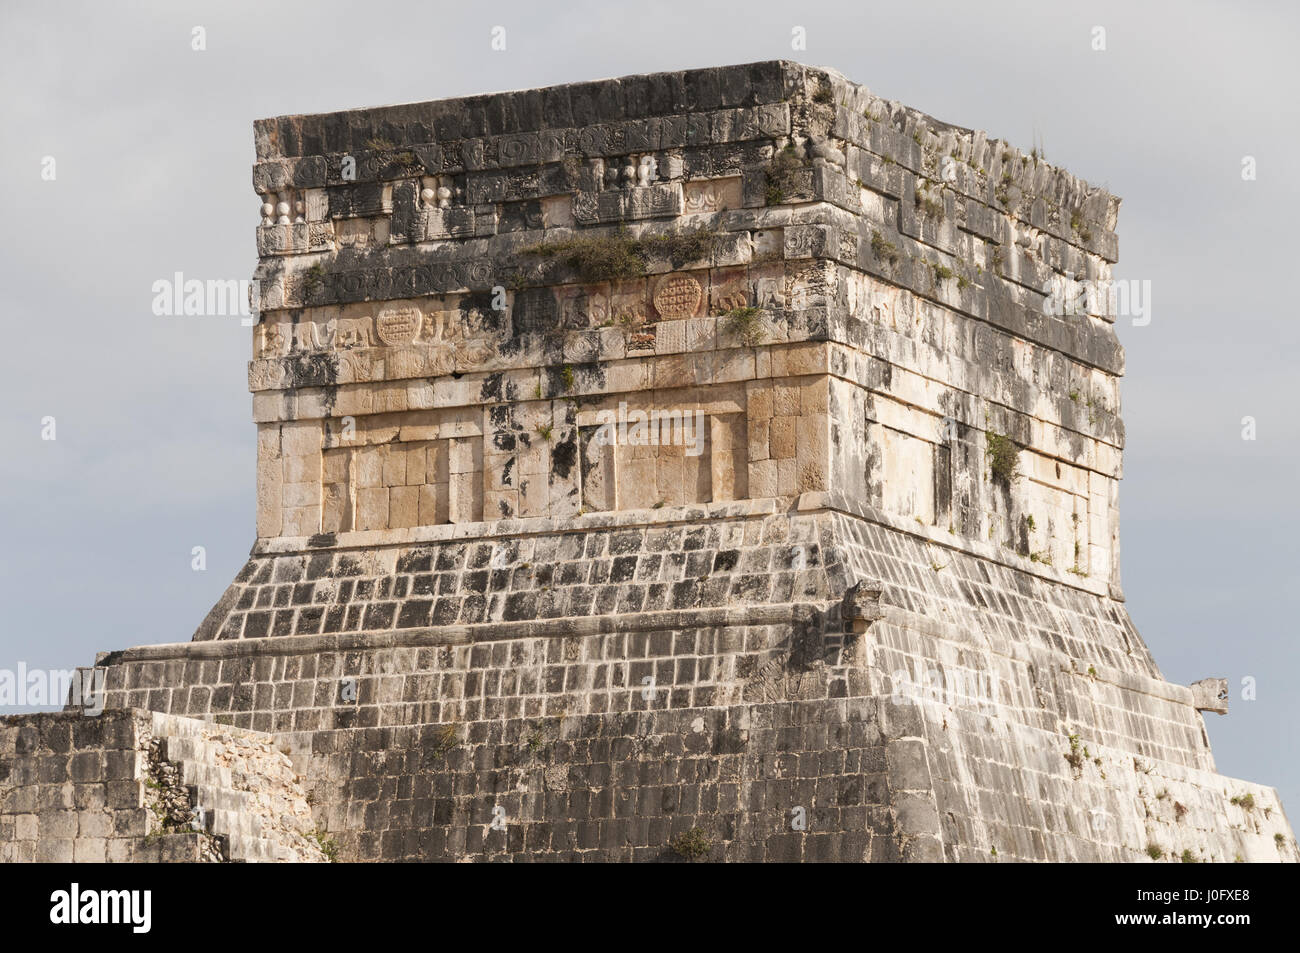 Mexico, Yucatan, Chichen Itza Mayan site, Gran Juego de Pelota, Great Ball Court, Temple of Jaguars and Shields - Stock Image